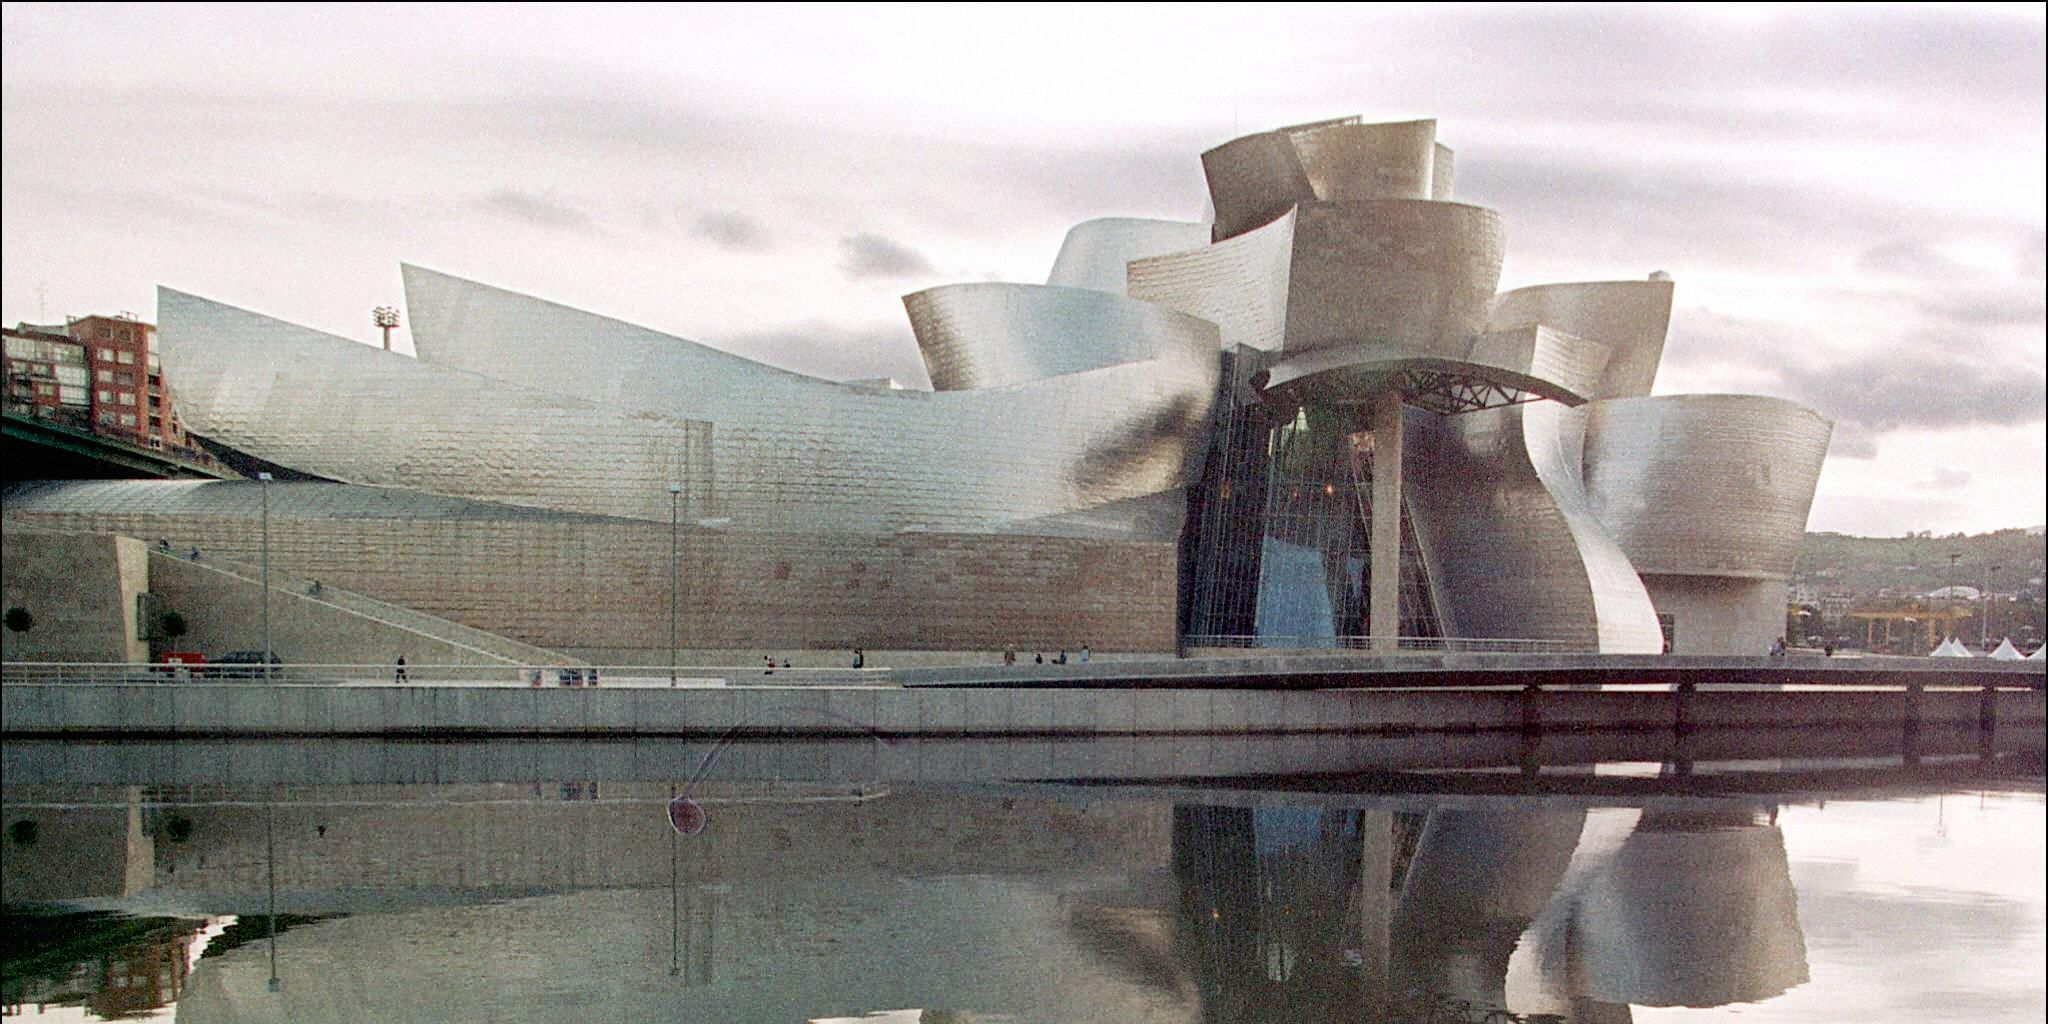 View of the new Guggenheim museum by the river Bil